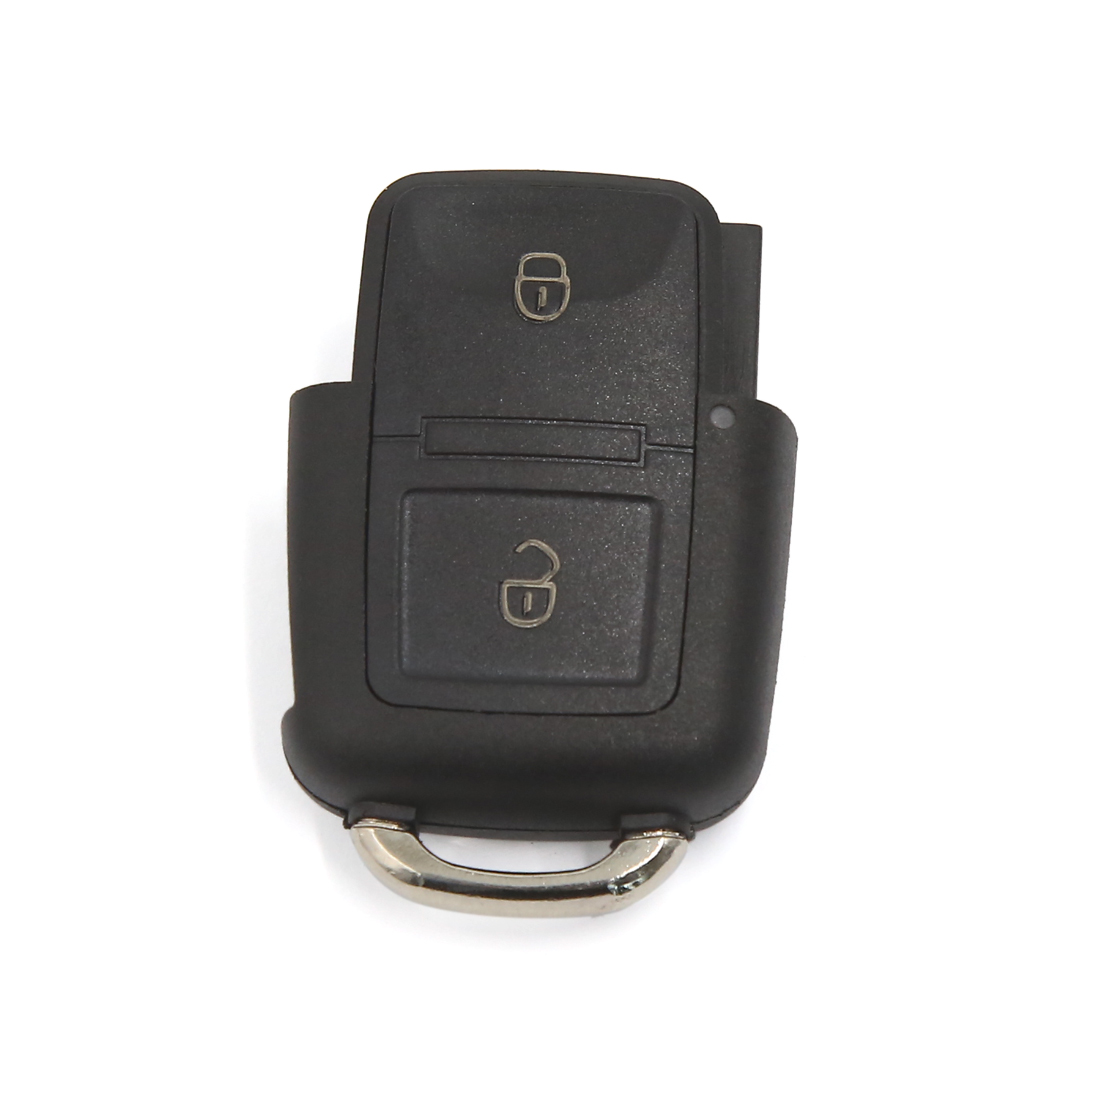 2 Buttons Remote Key Shell Keyless Entry Fob Case Fit for VW Golf MK4 Bora